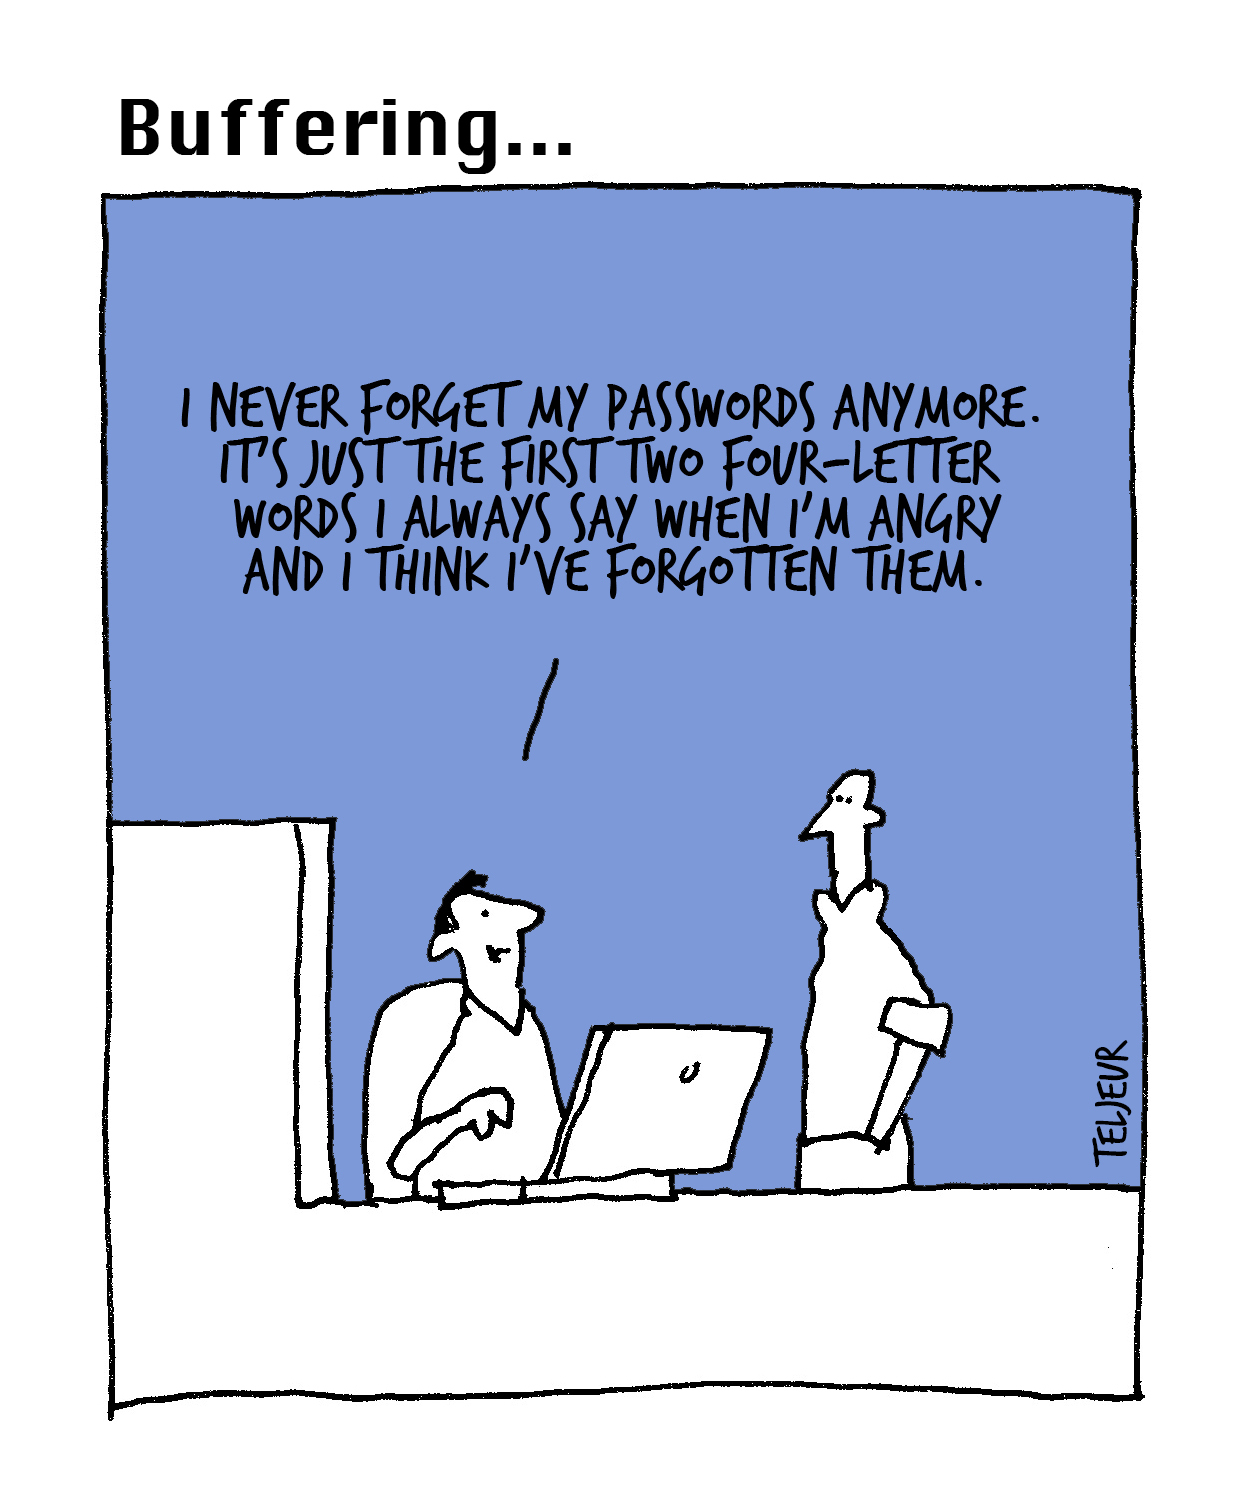 Buffering-passwords